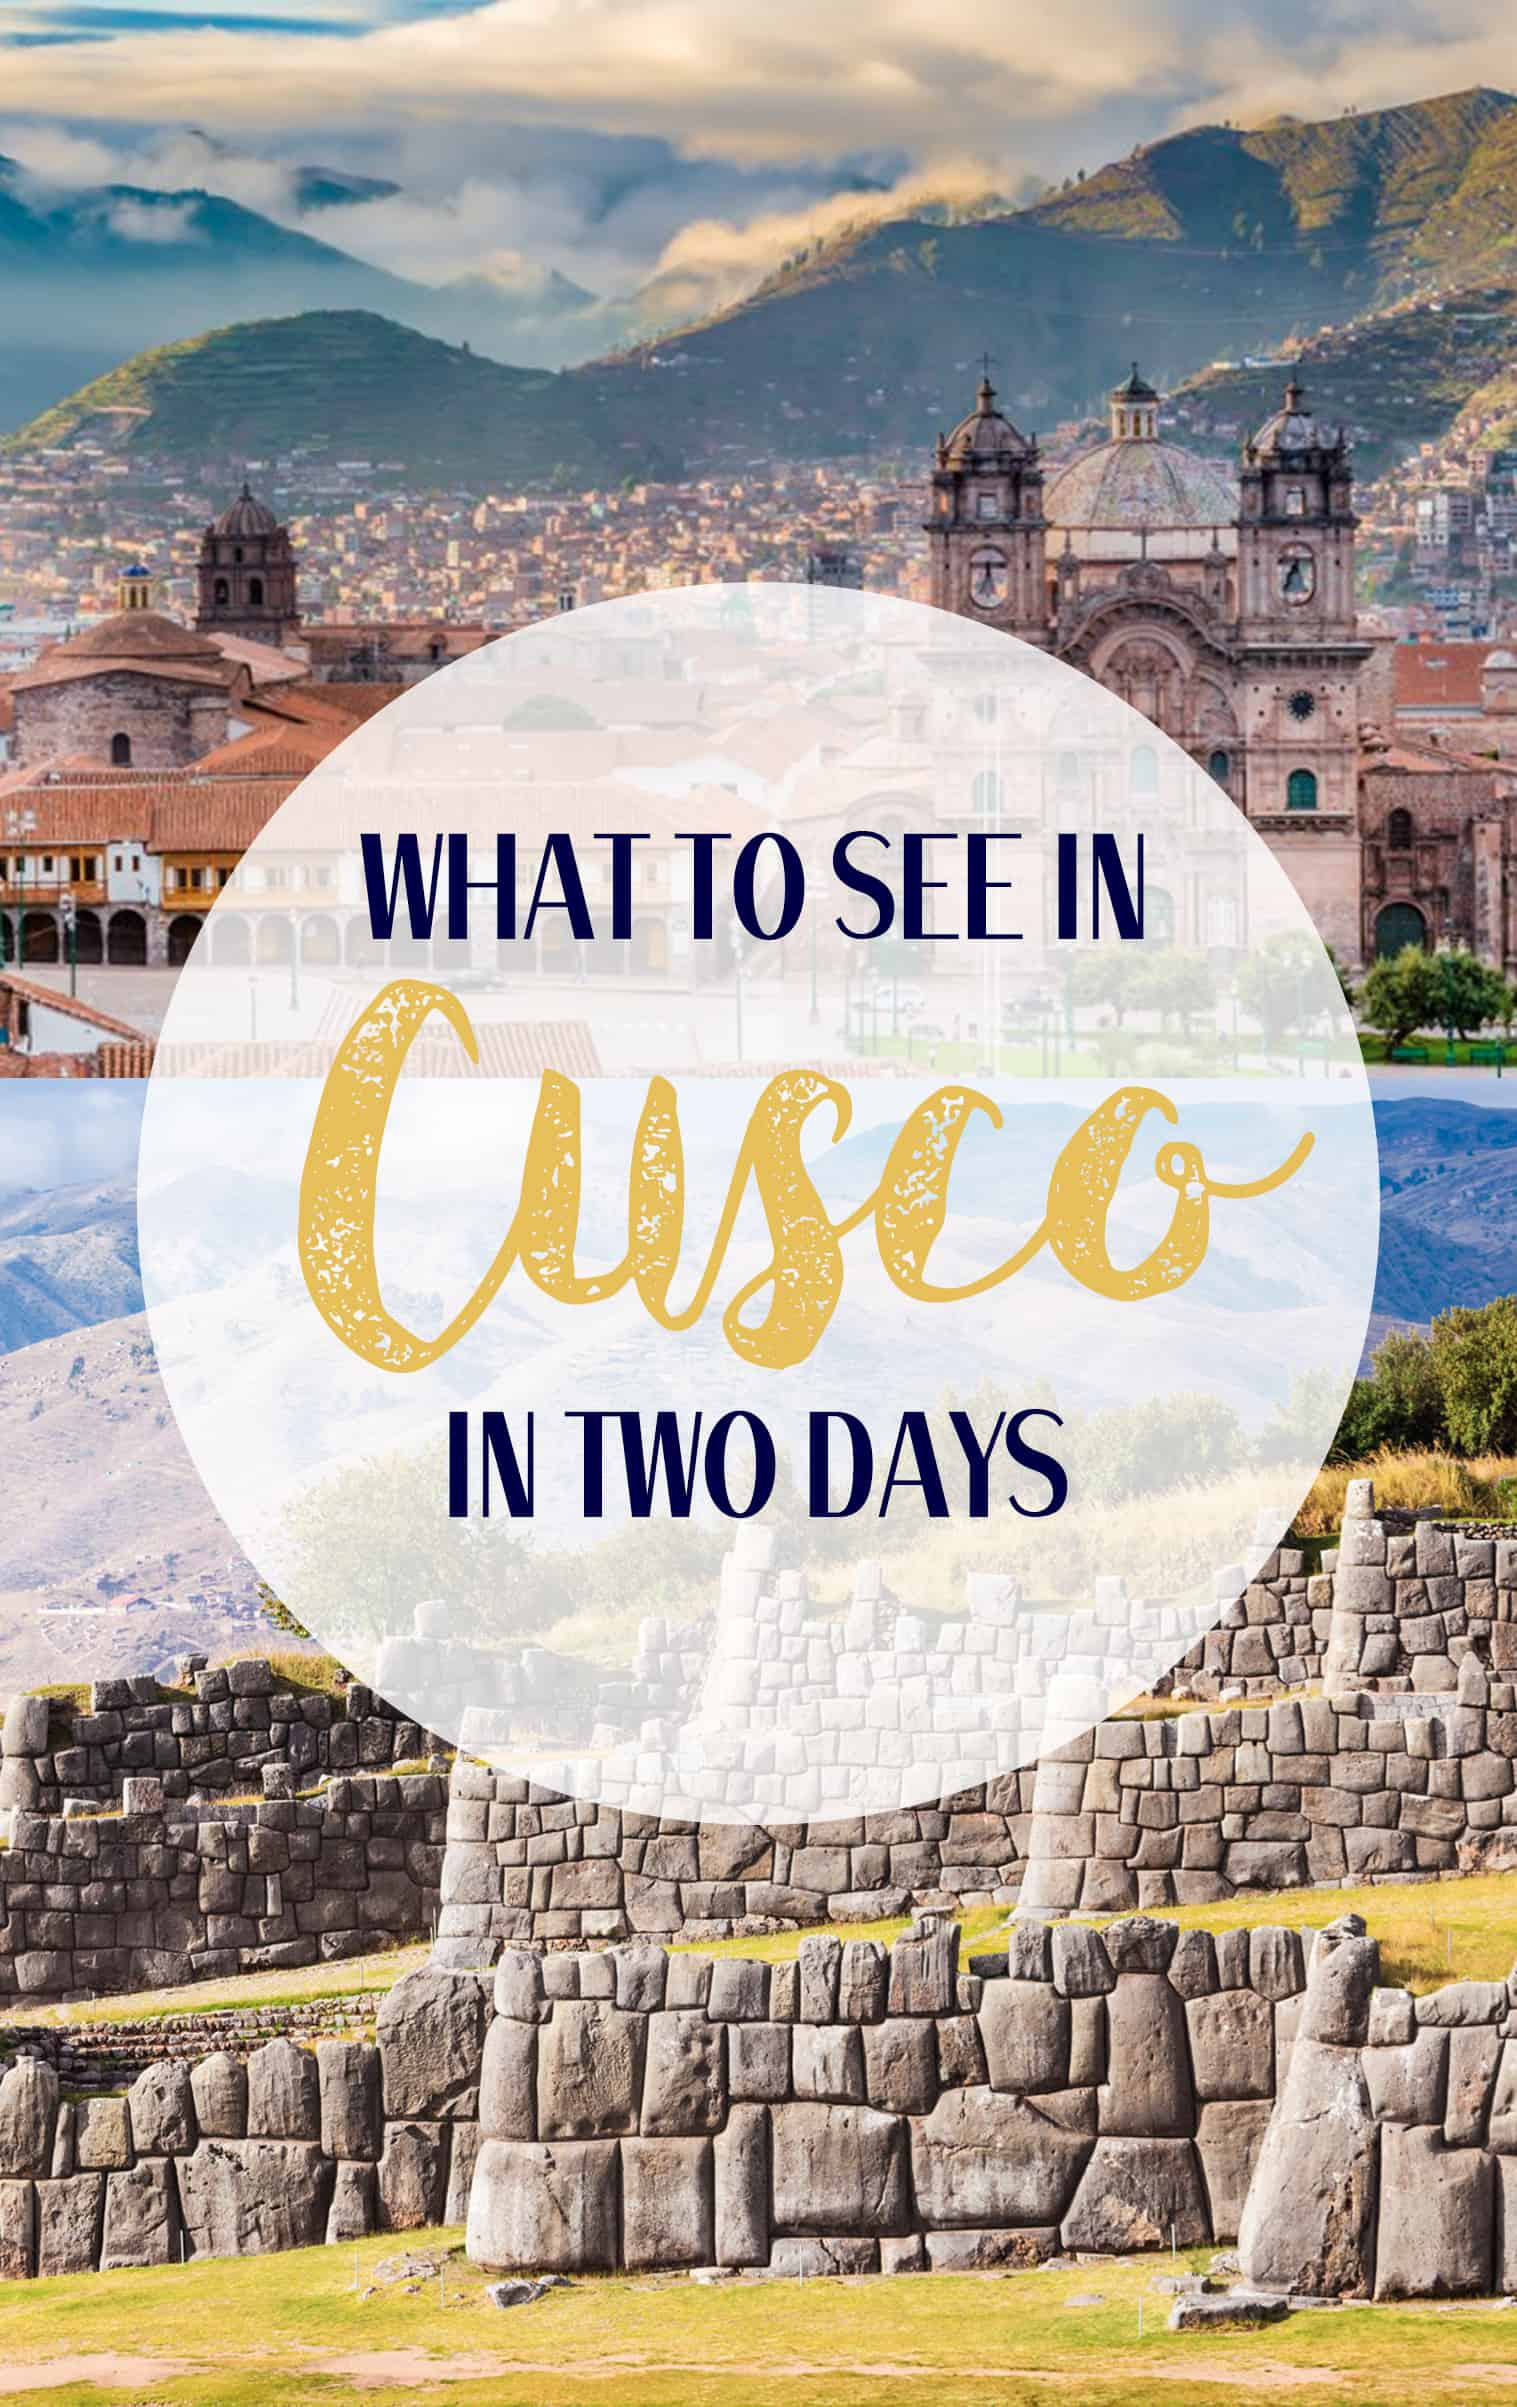 What to see in Cusco in 2 days